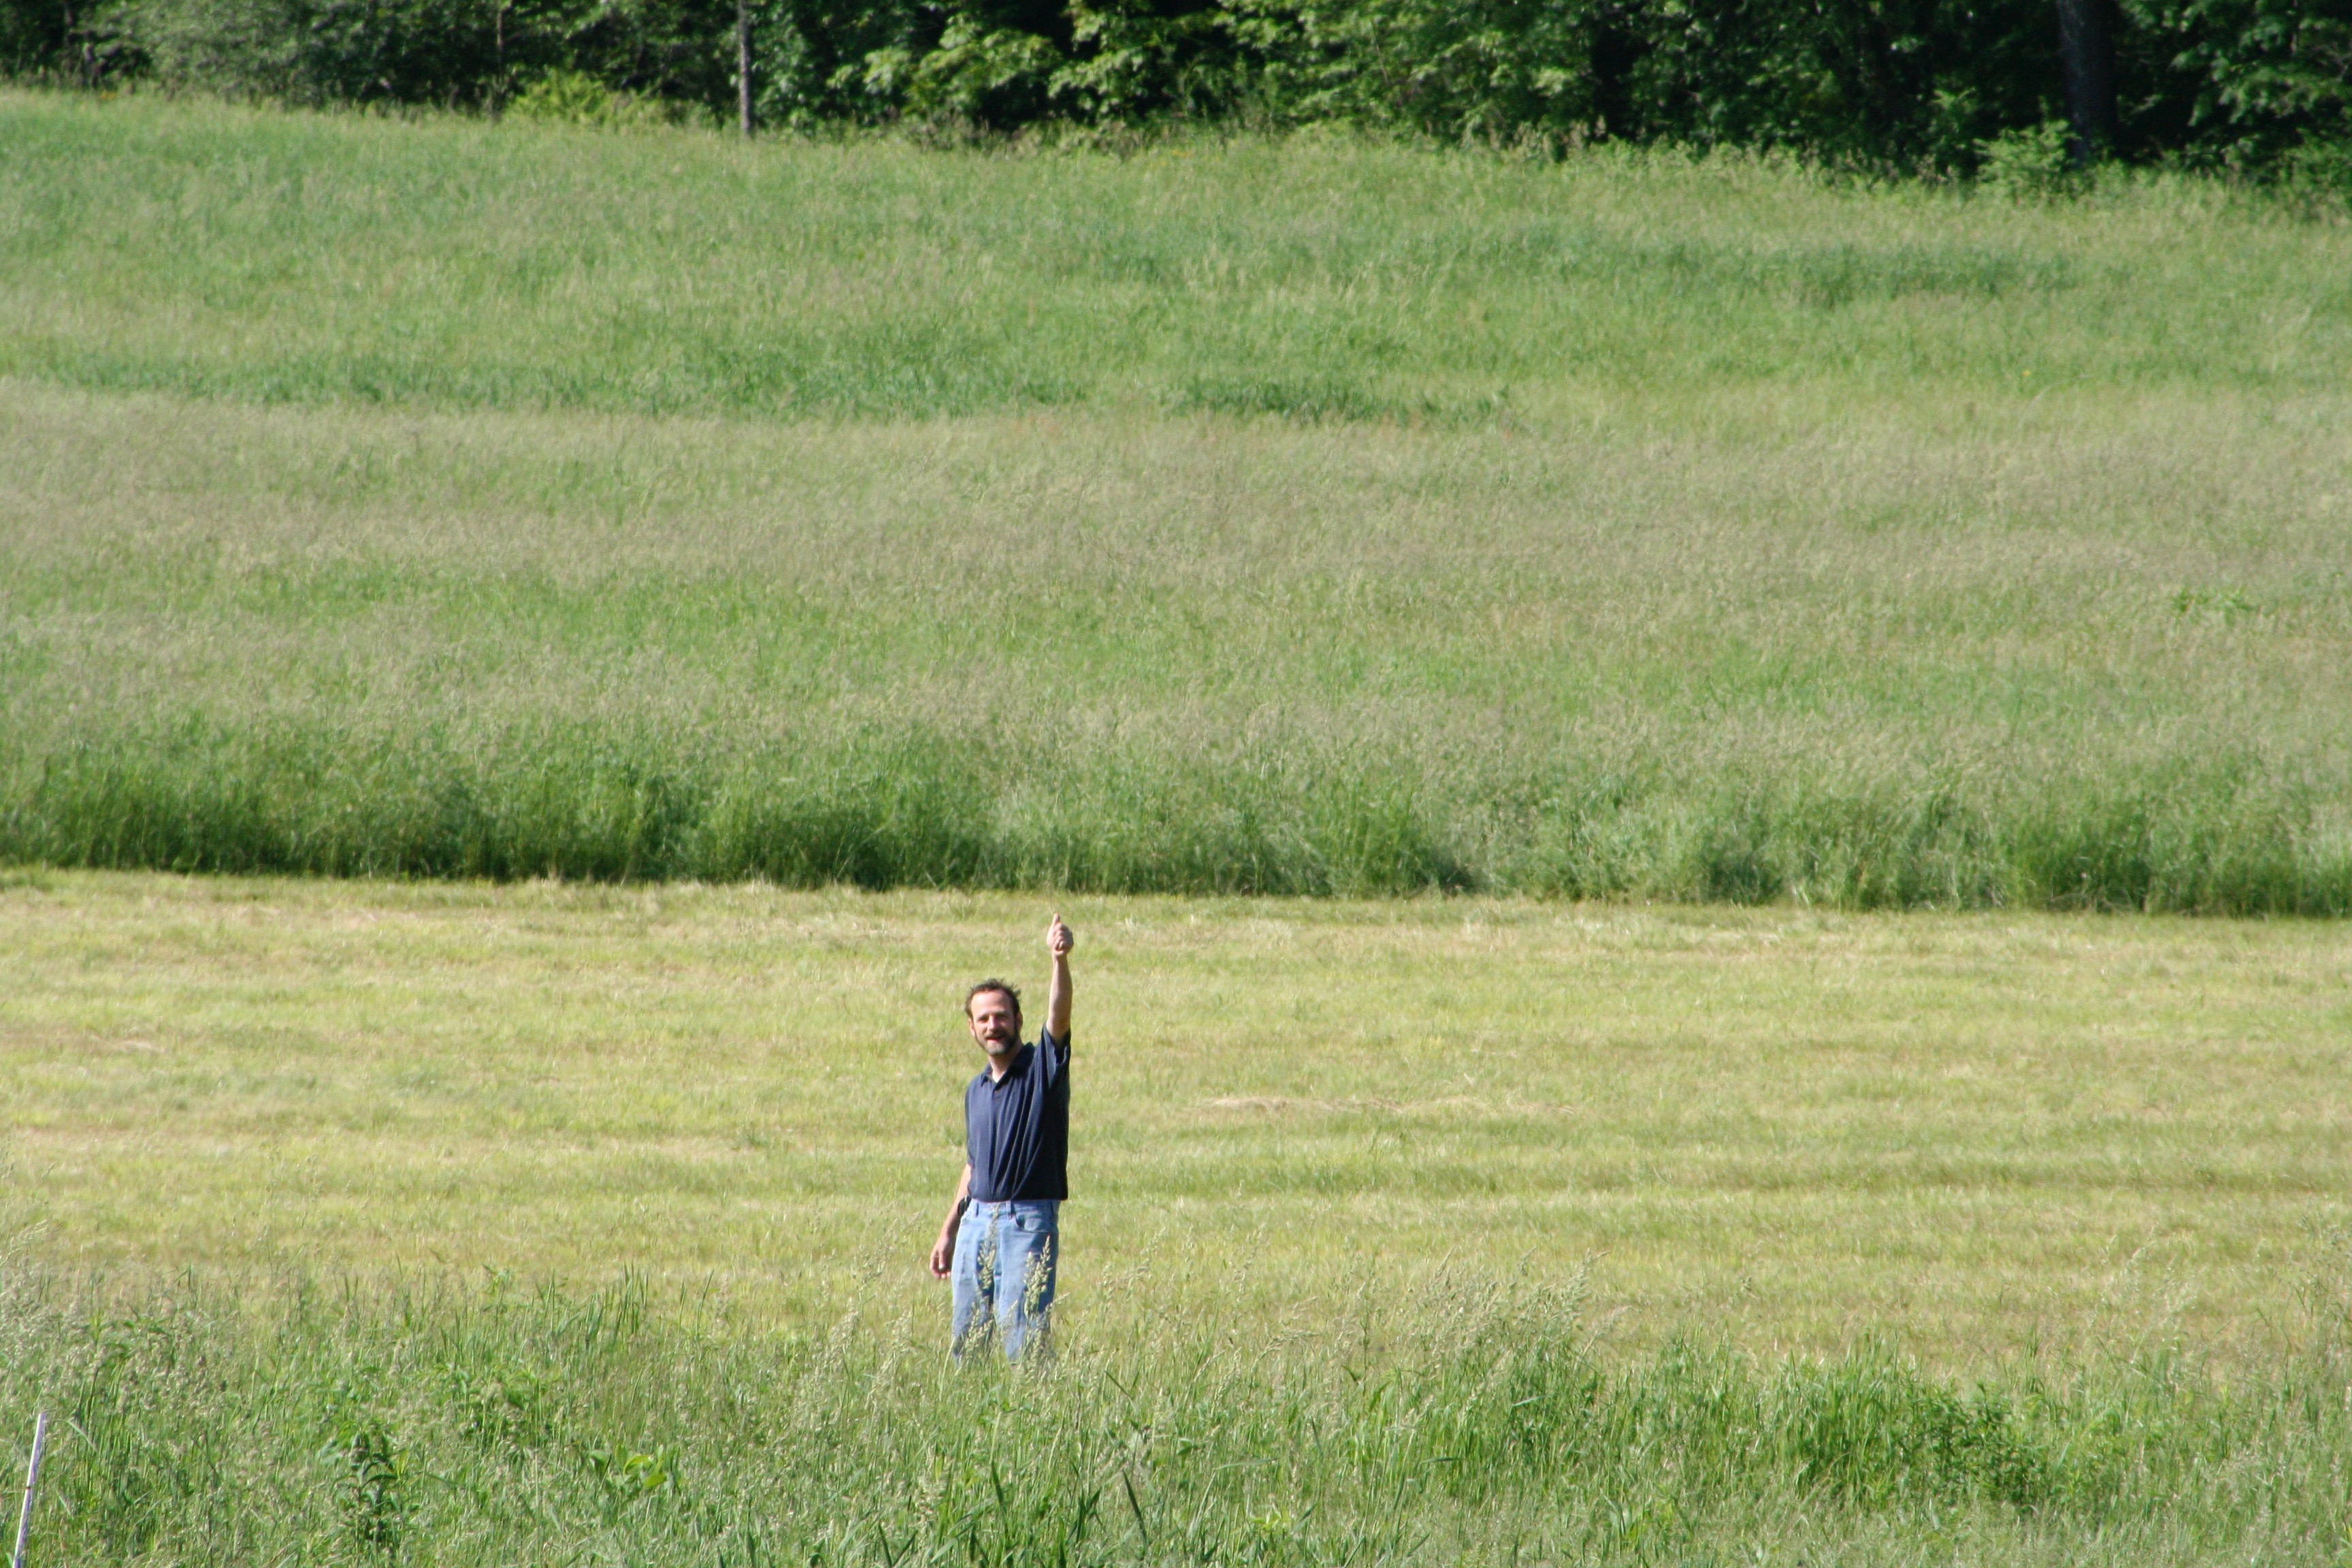 Michael waving from the large field